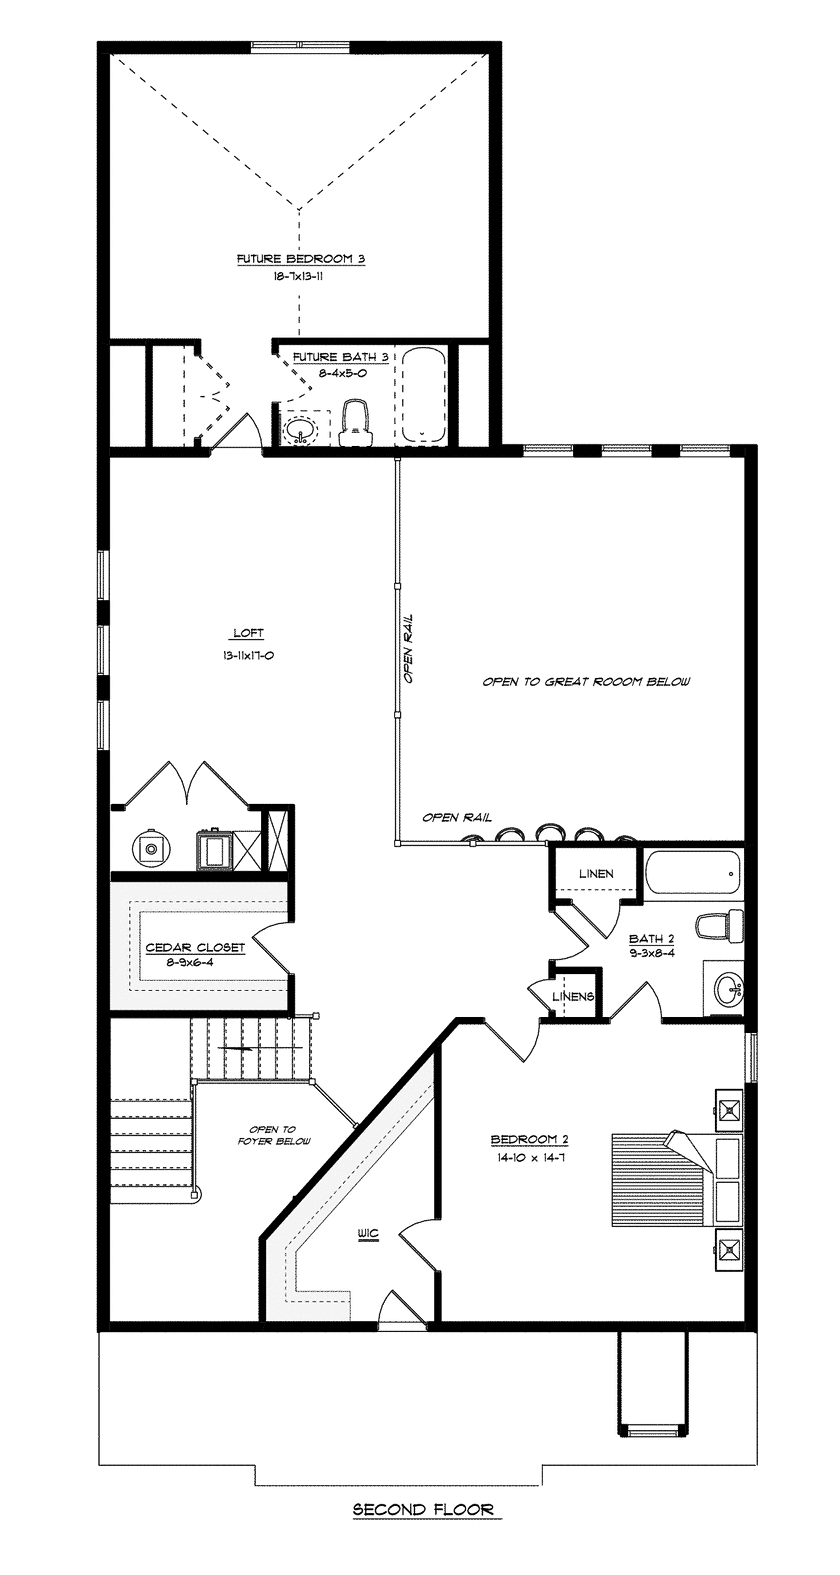 Craig Builders second floor floorplan for the Brookfield Courtyard home plan